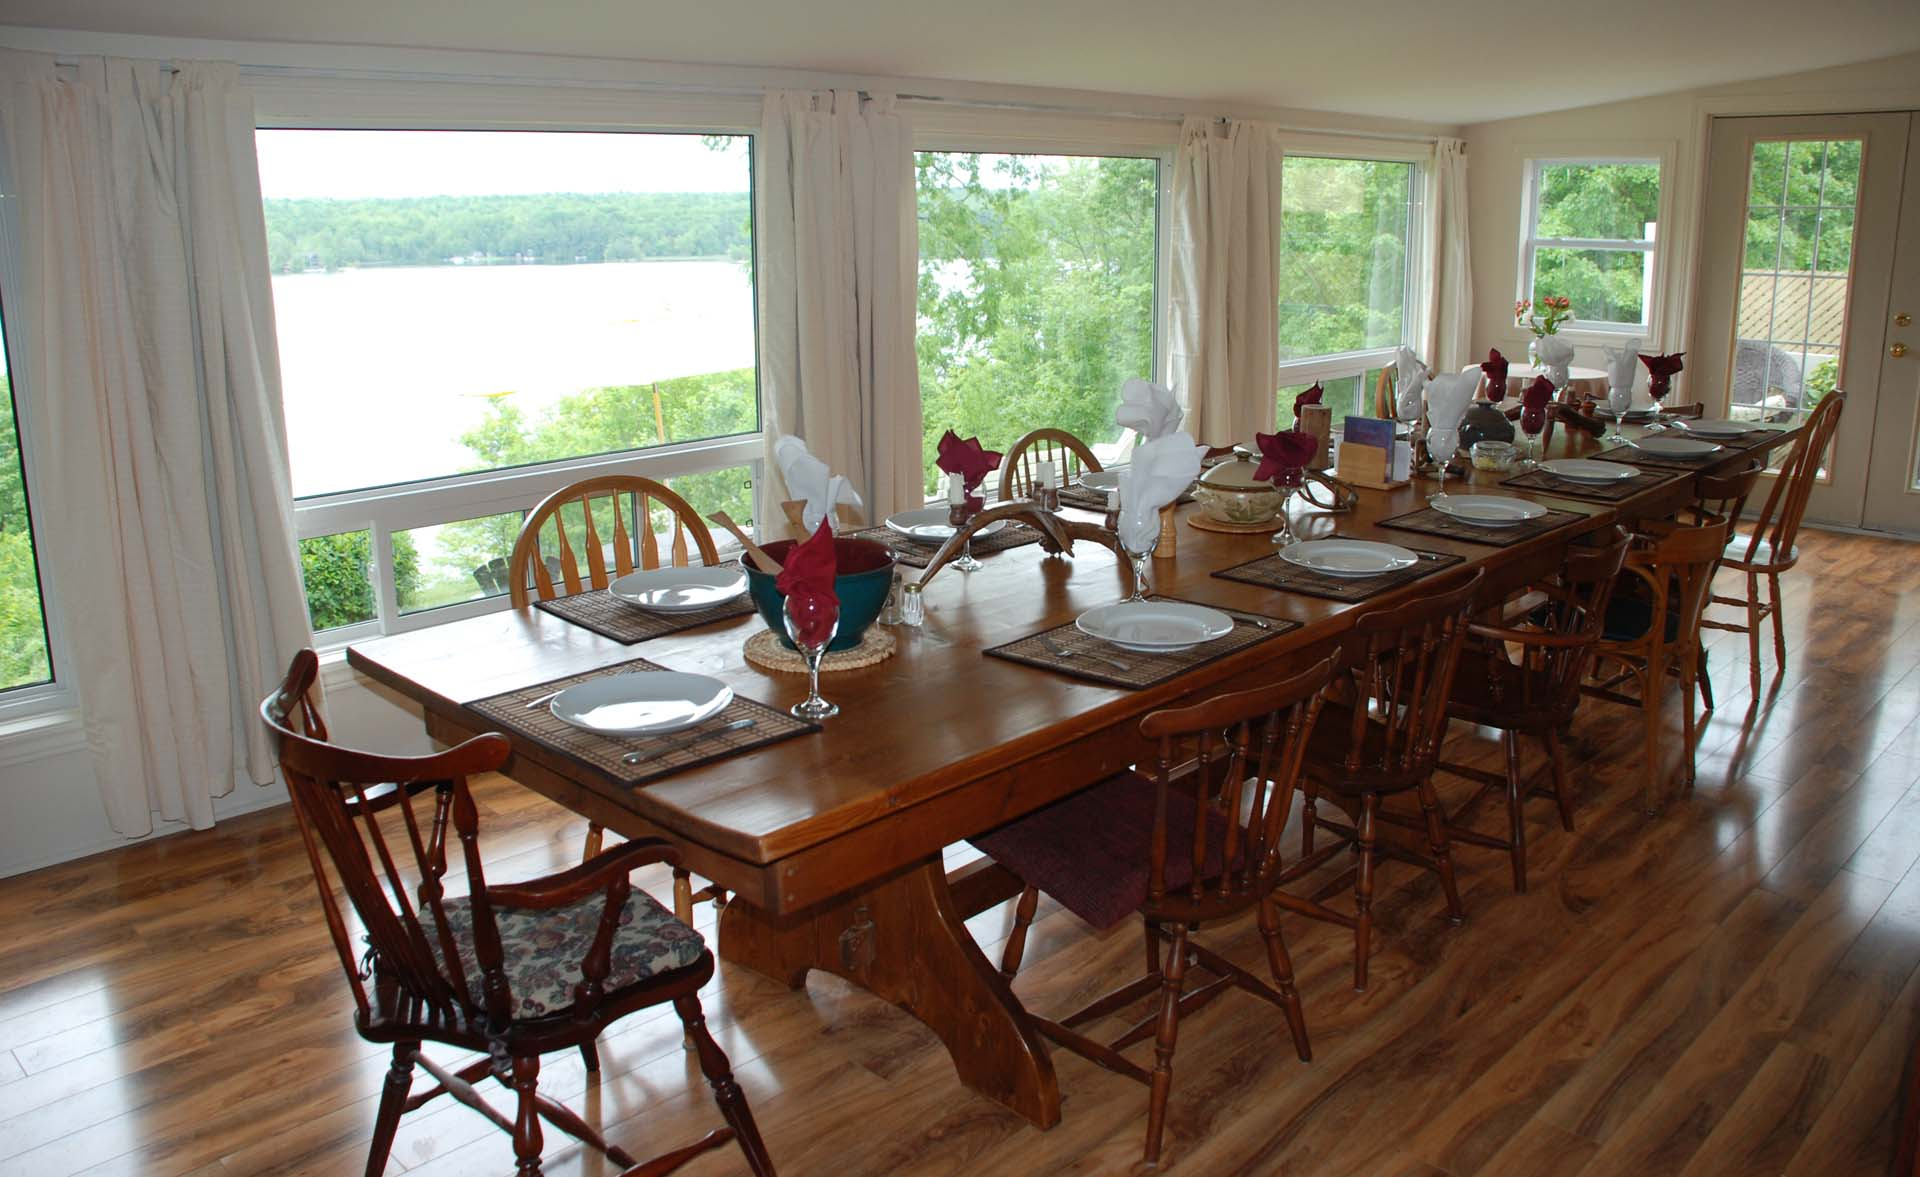 dining-room-overlooking-lake.jpg